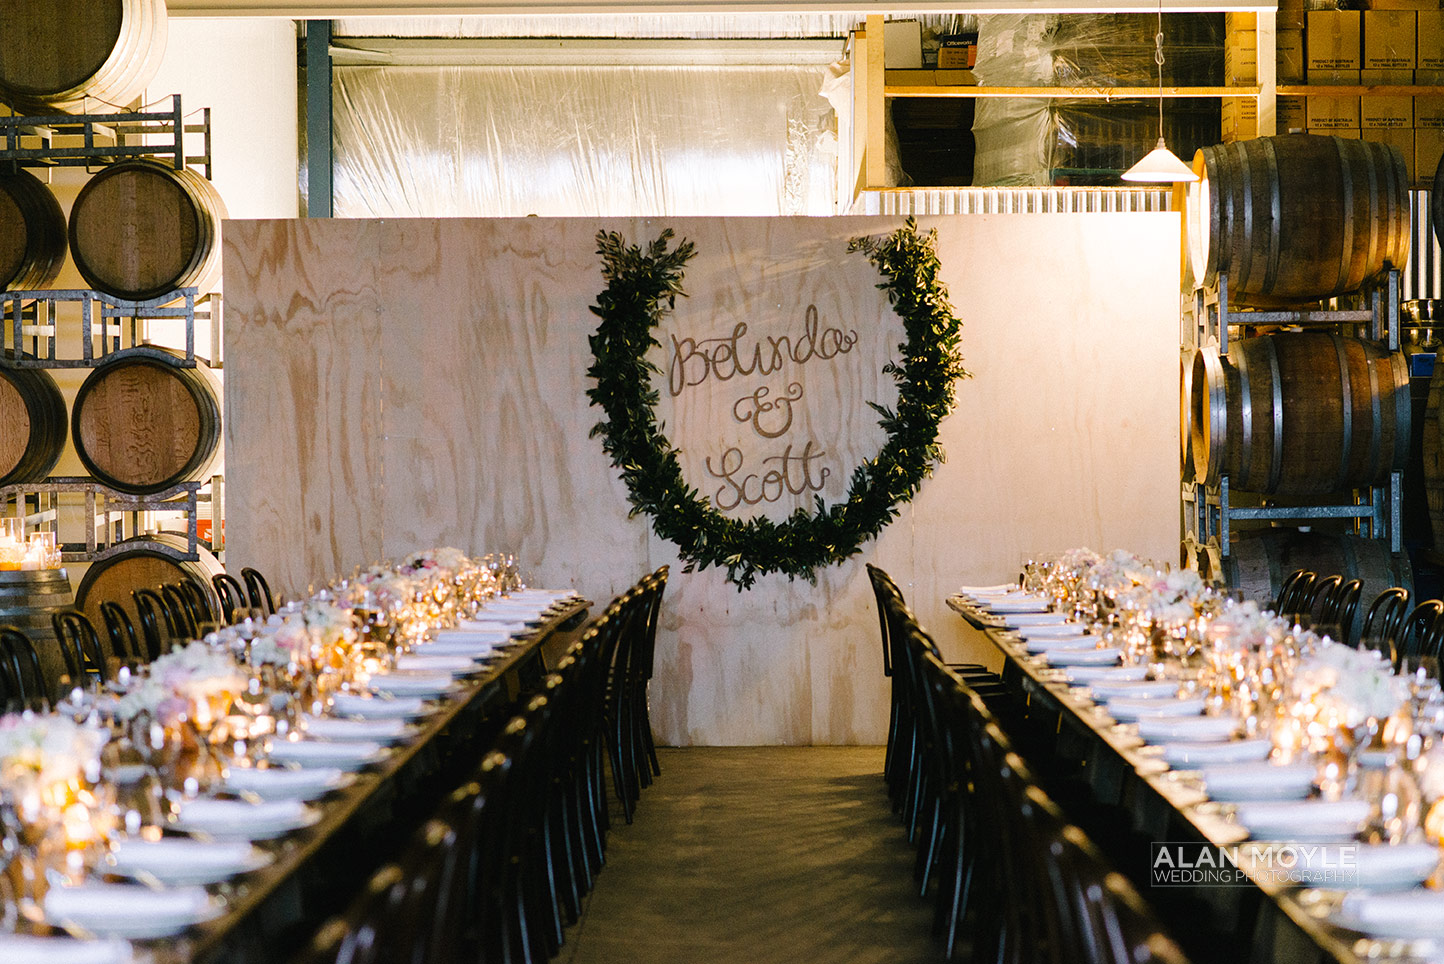 1405austin-281weddings_of_desire_melbourne_styling_event_geelong_alan_moyle_vineyard_winery_caligraphy_laura_sprout_hire_bayside.jpg